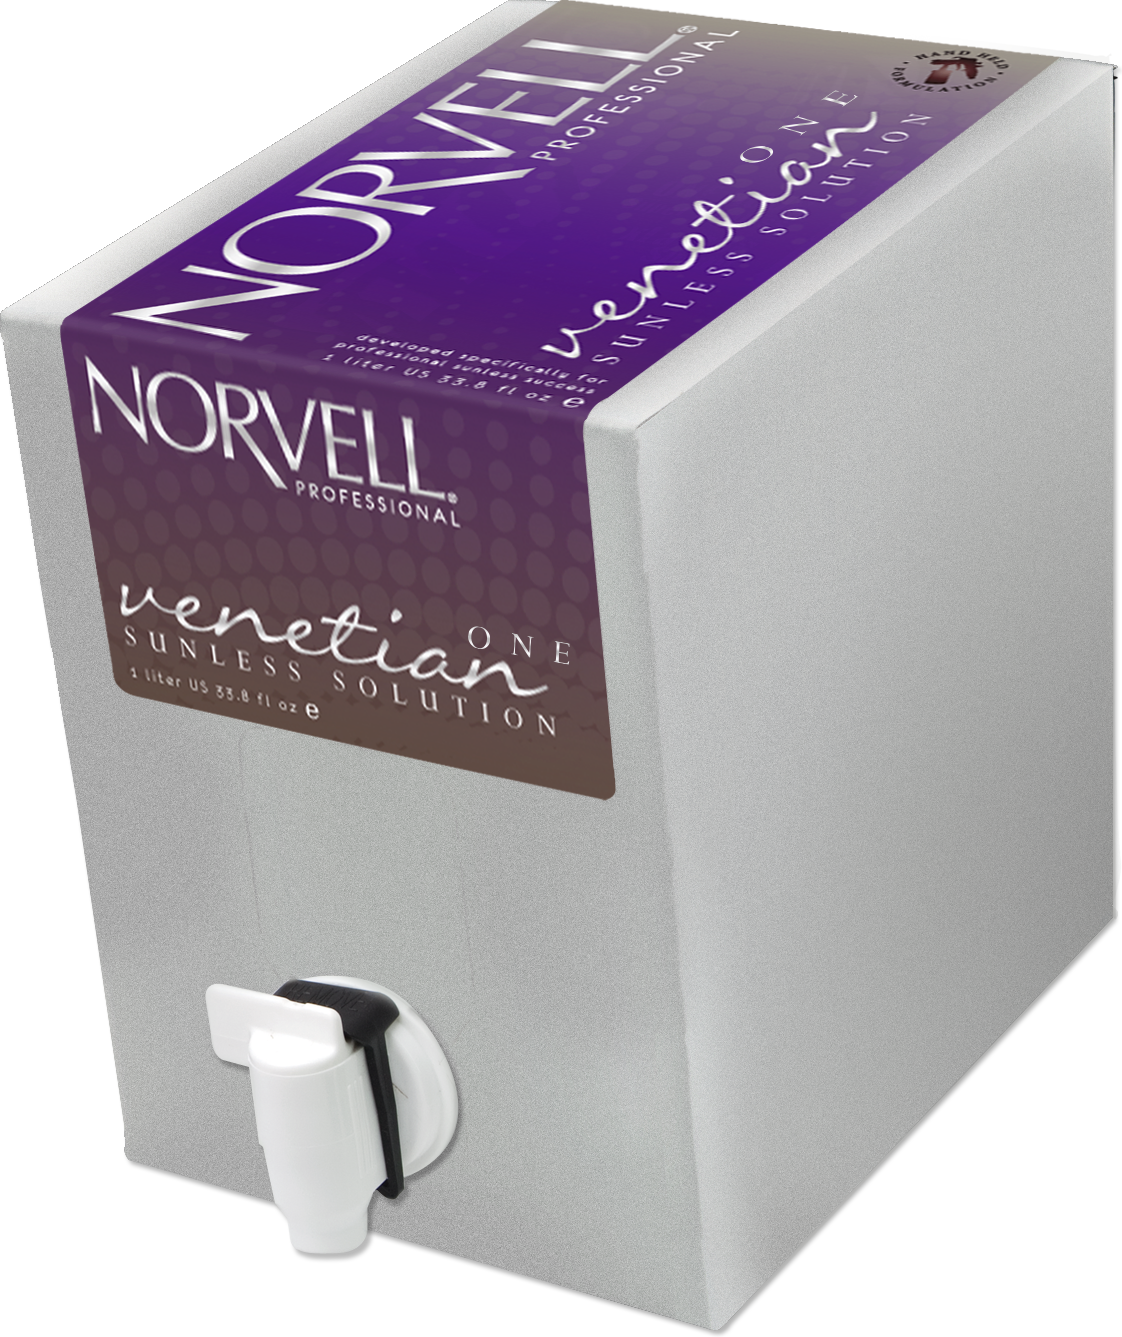 Norvell Venetian ONE Spray Tanning Solution